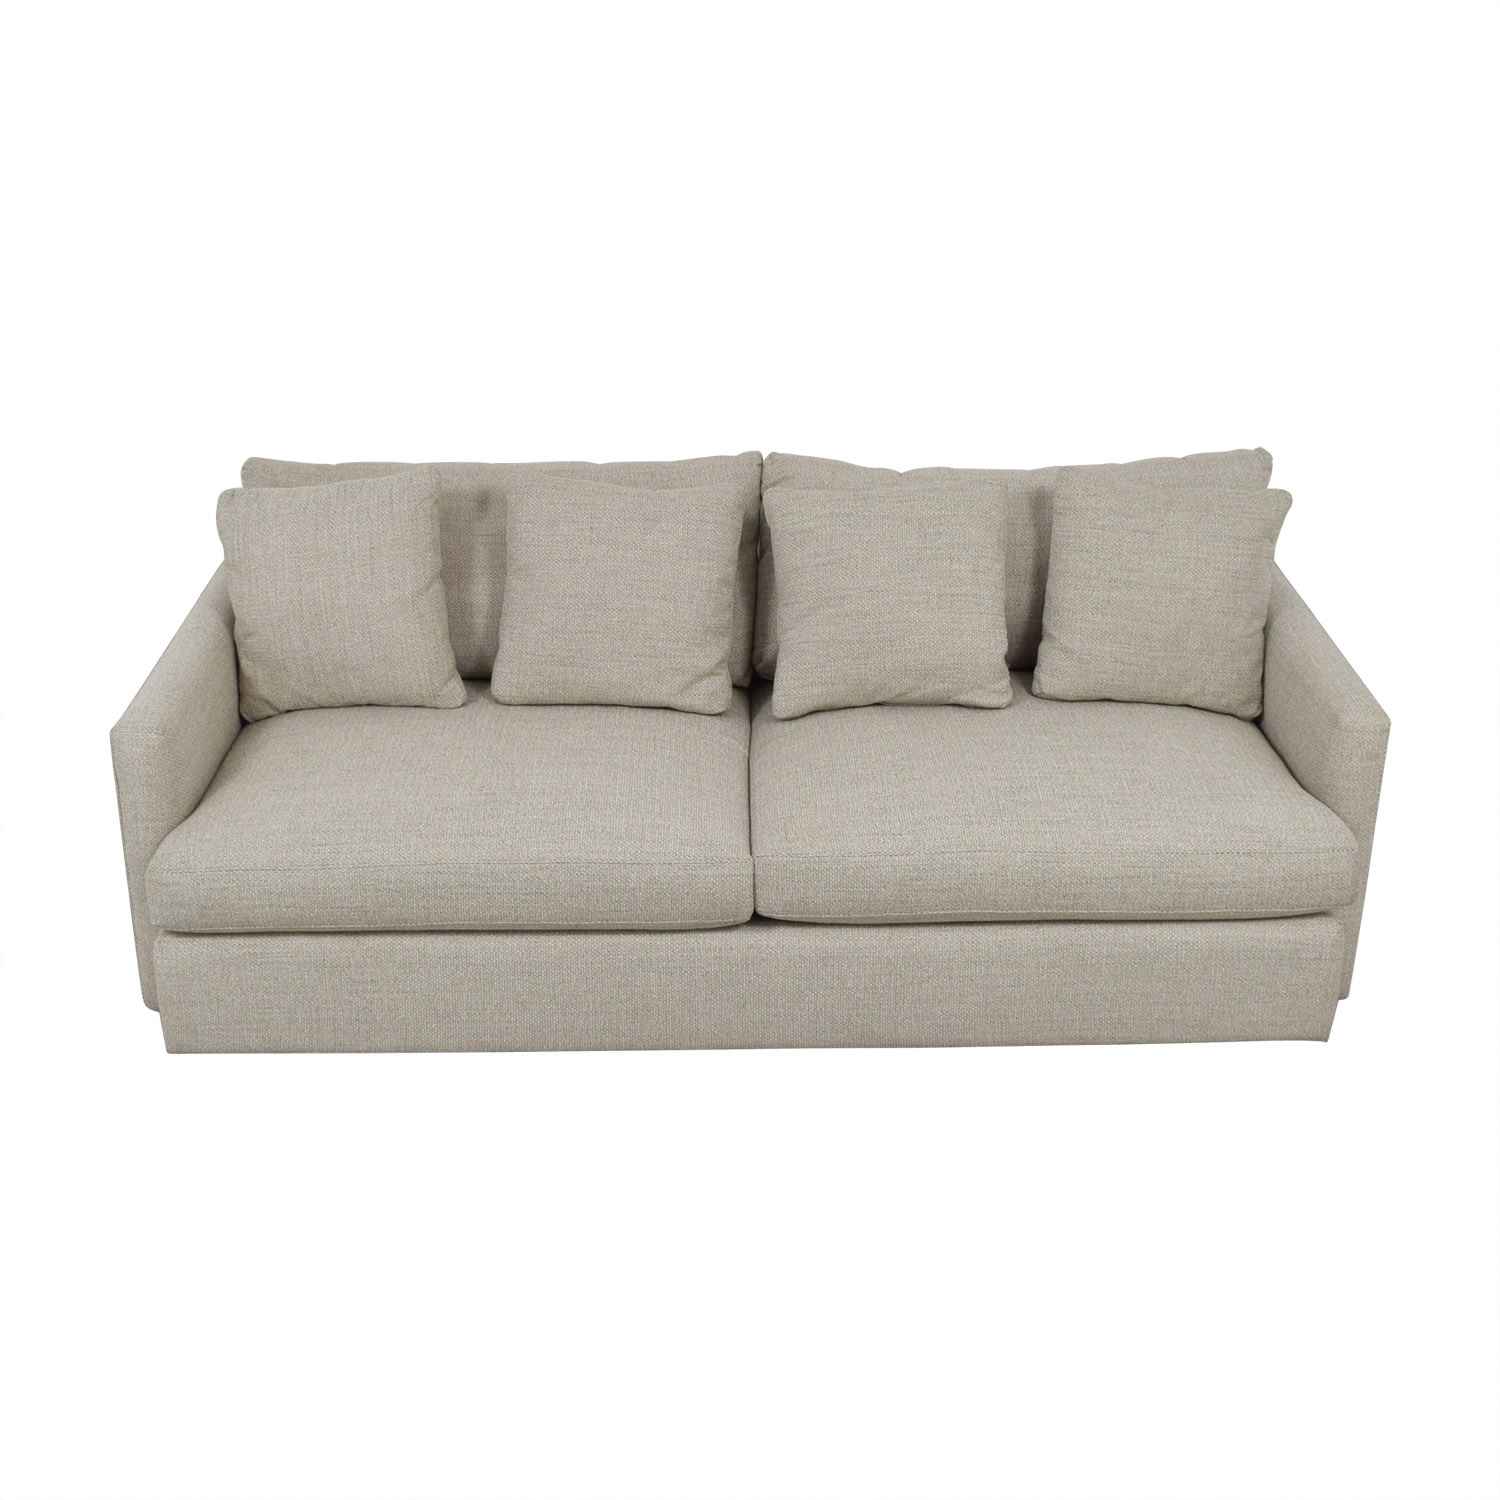 Crate & Barrel Crate & Barrel Lounge II Grey Two-Cushion Sofa discount